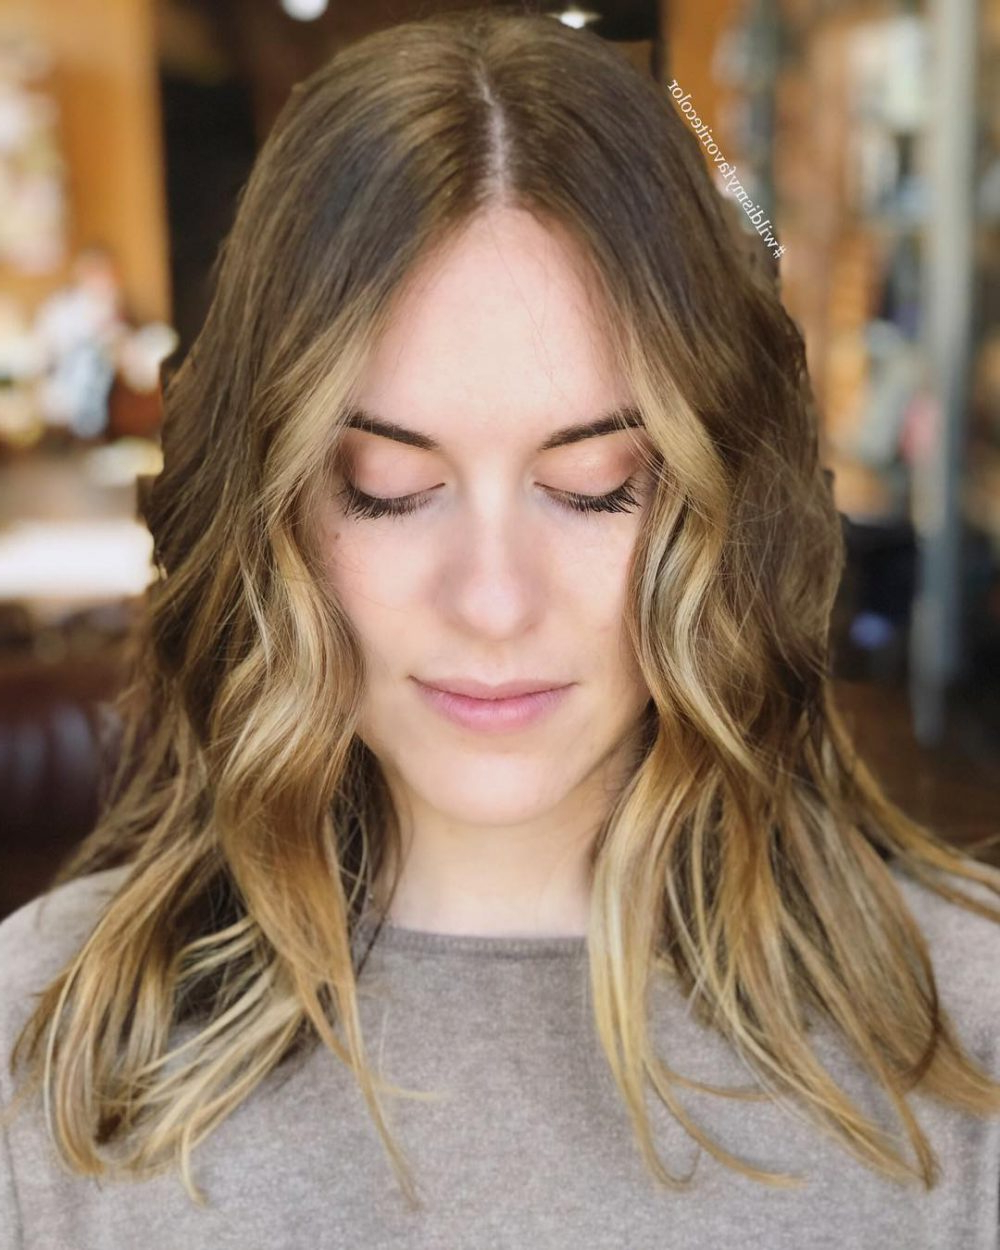 Fashionable Medium Haircuts With Layers For Round Faces Intended For 17 Flattering Medium Hairstyles For Round Faces In (View 3 of 20)